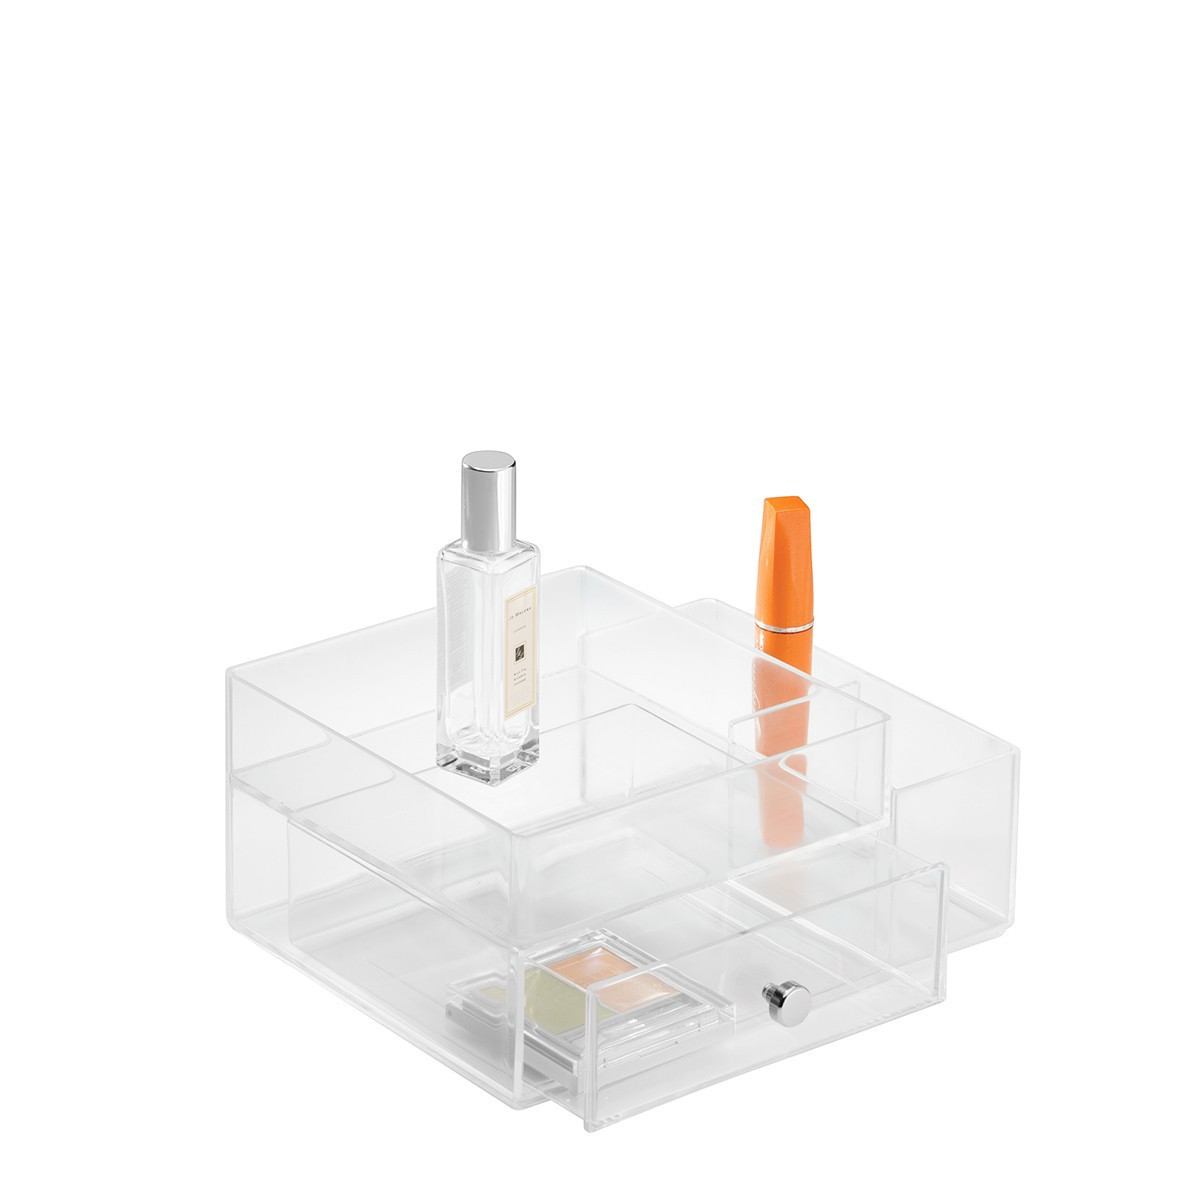 Bo te acrylique transparent rangement maquillage - Rangement maquillage tiroir ...